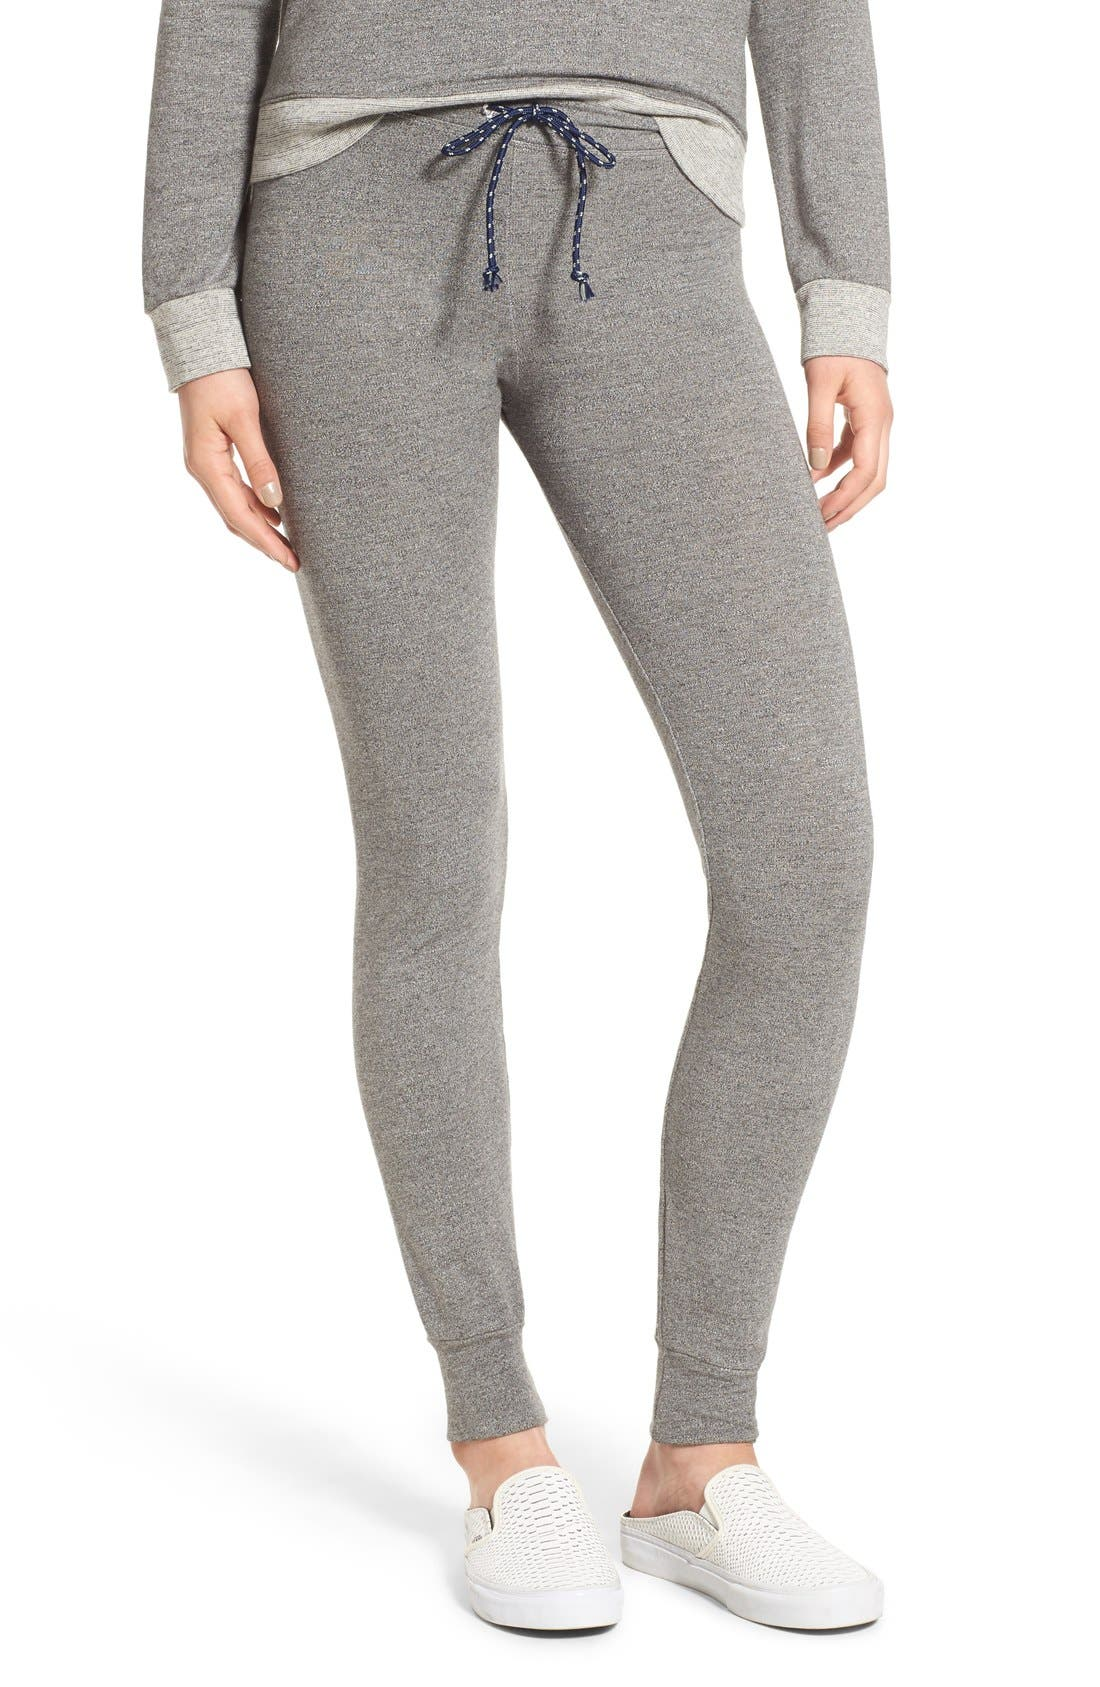 Skinny Sweatpants,                             Main thumbnail 1, color,                             039